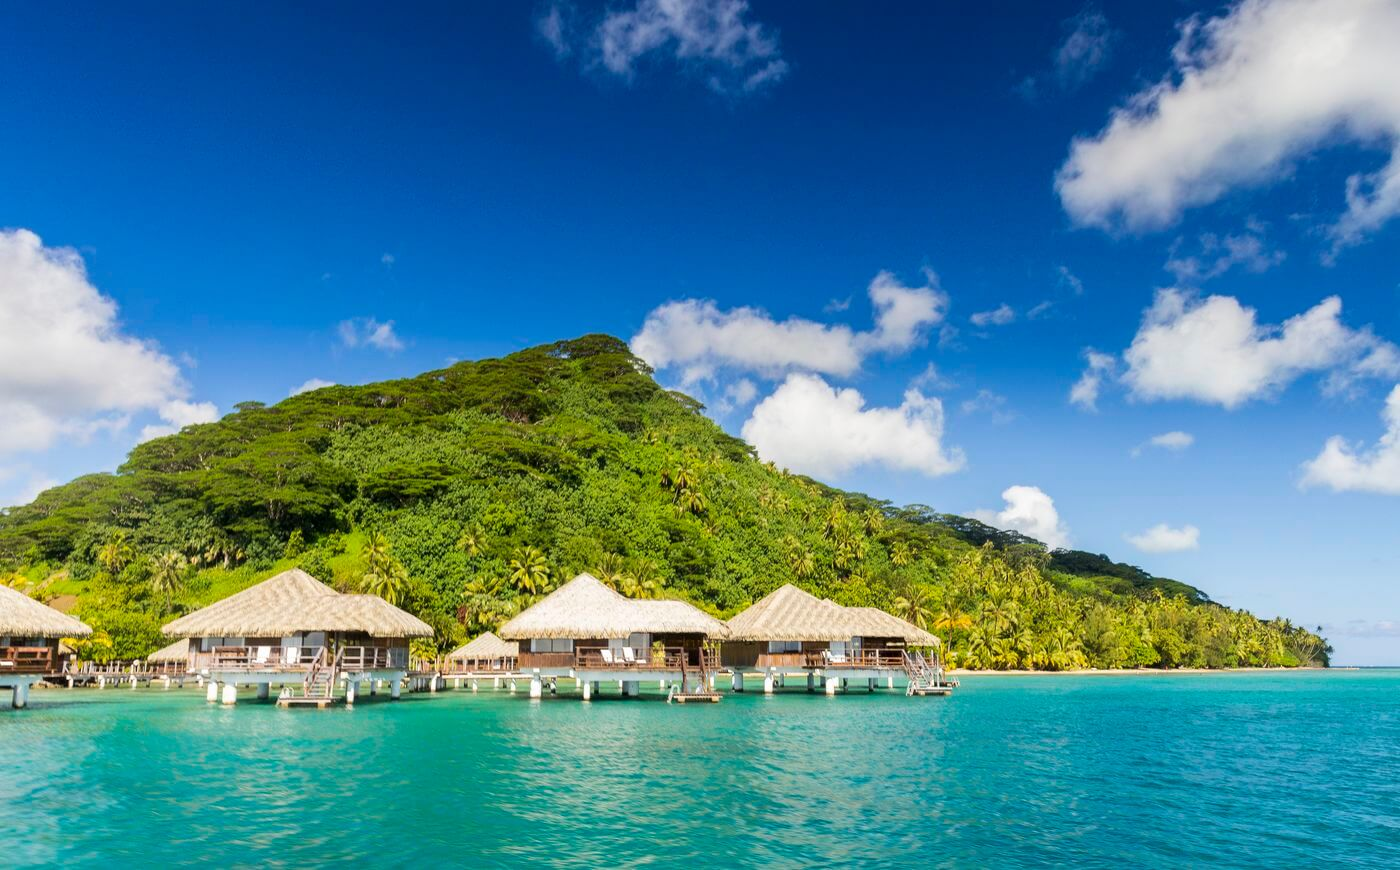 Overwater bungalows in Huahine